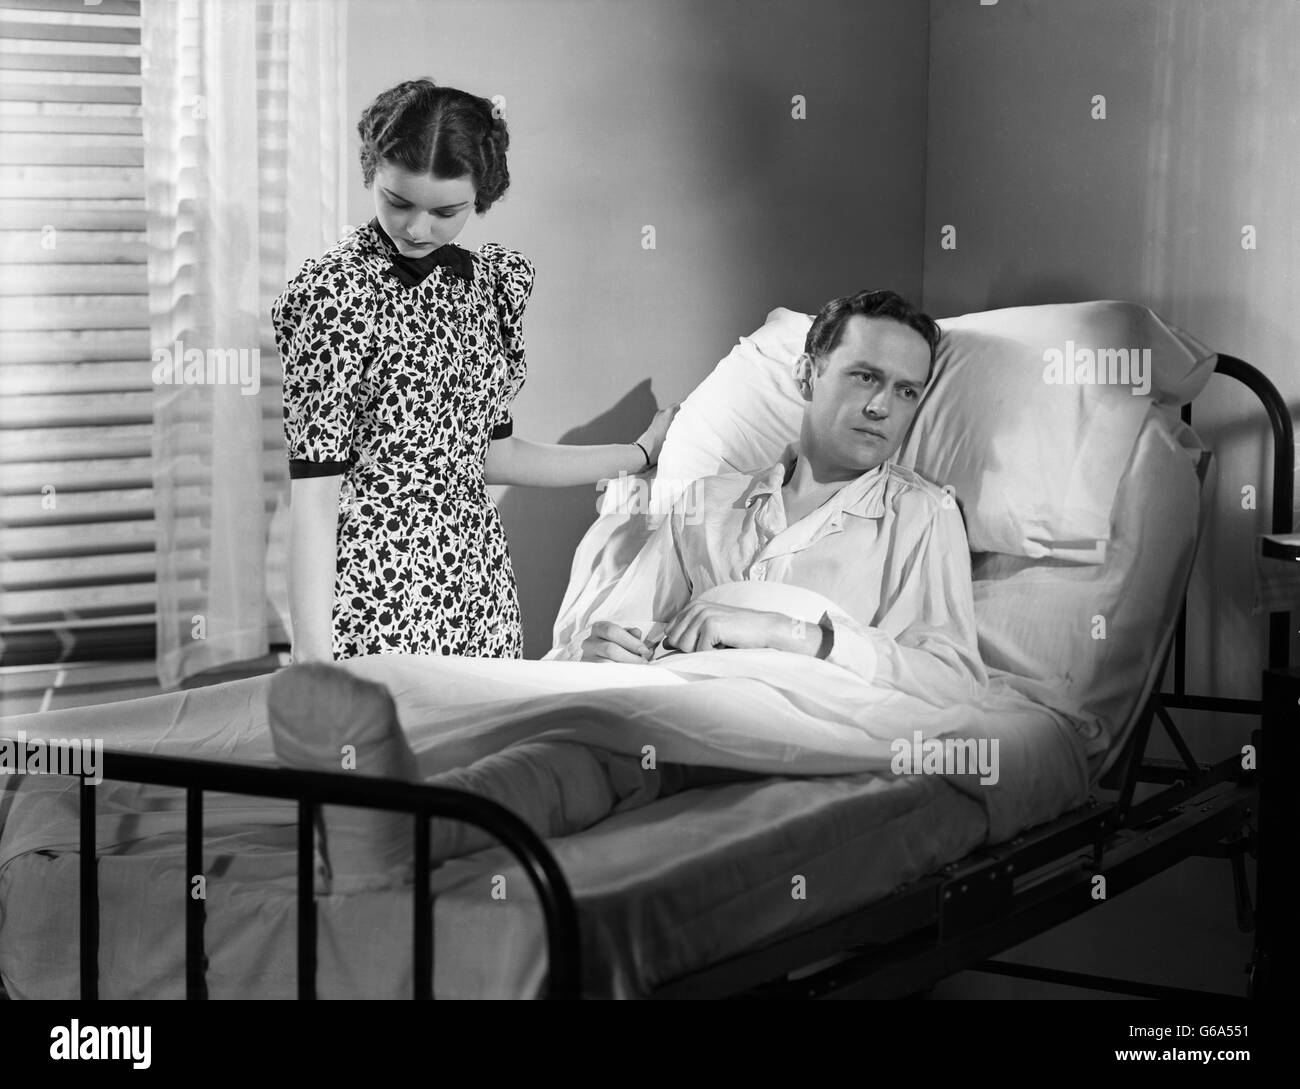 1930s WOMAN BY BEDSIDE MAN IN HOSPITAL BED DEPRESSED WITH BANDAGED LEG - Stock Image